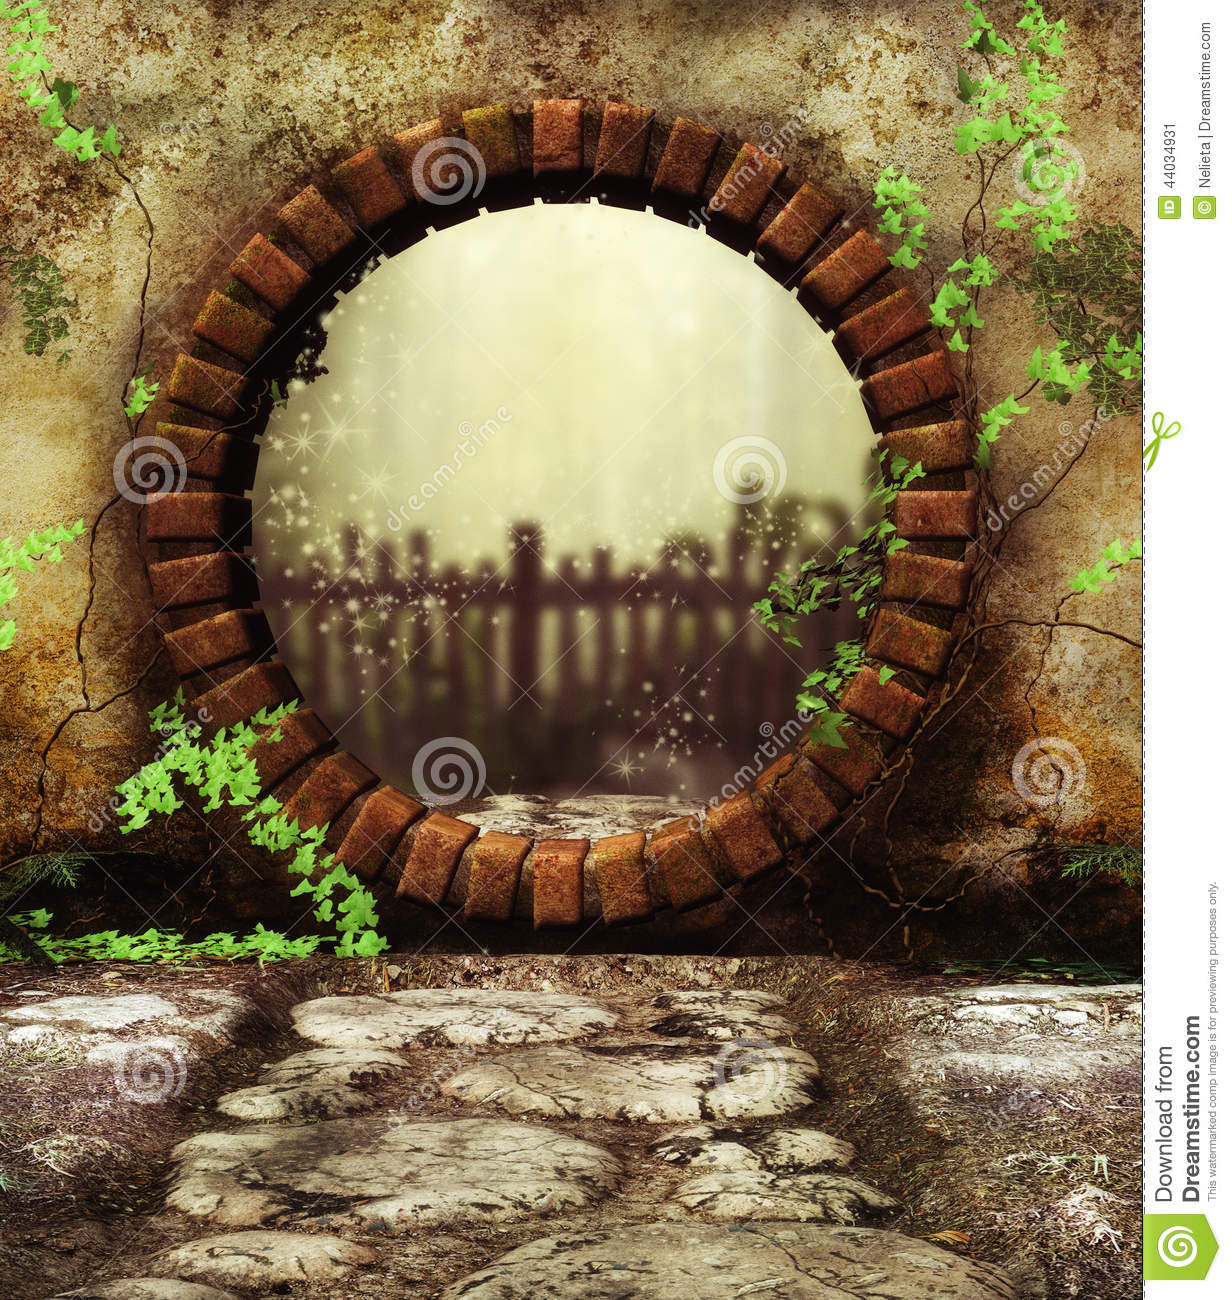 3d Digital Render Of A Round Garden Gate And Entry To Secret Garden